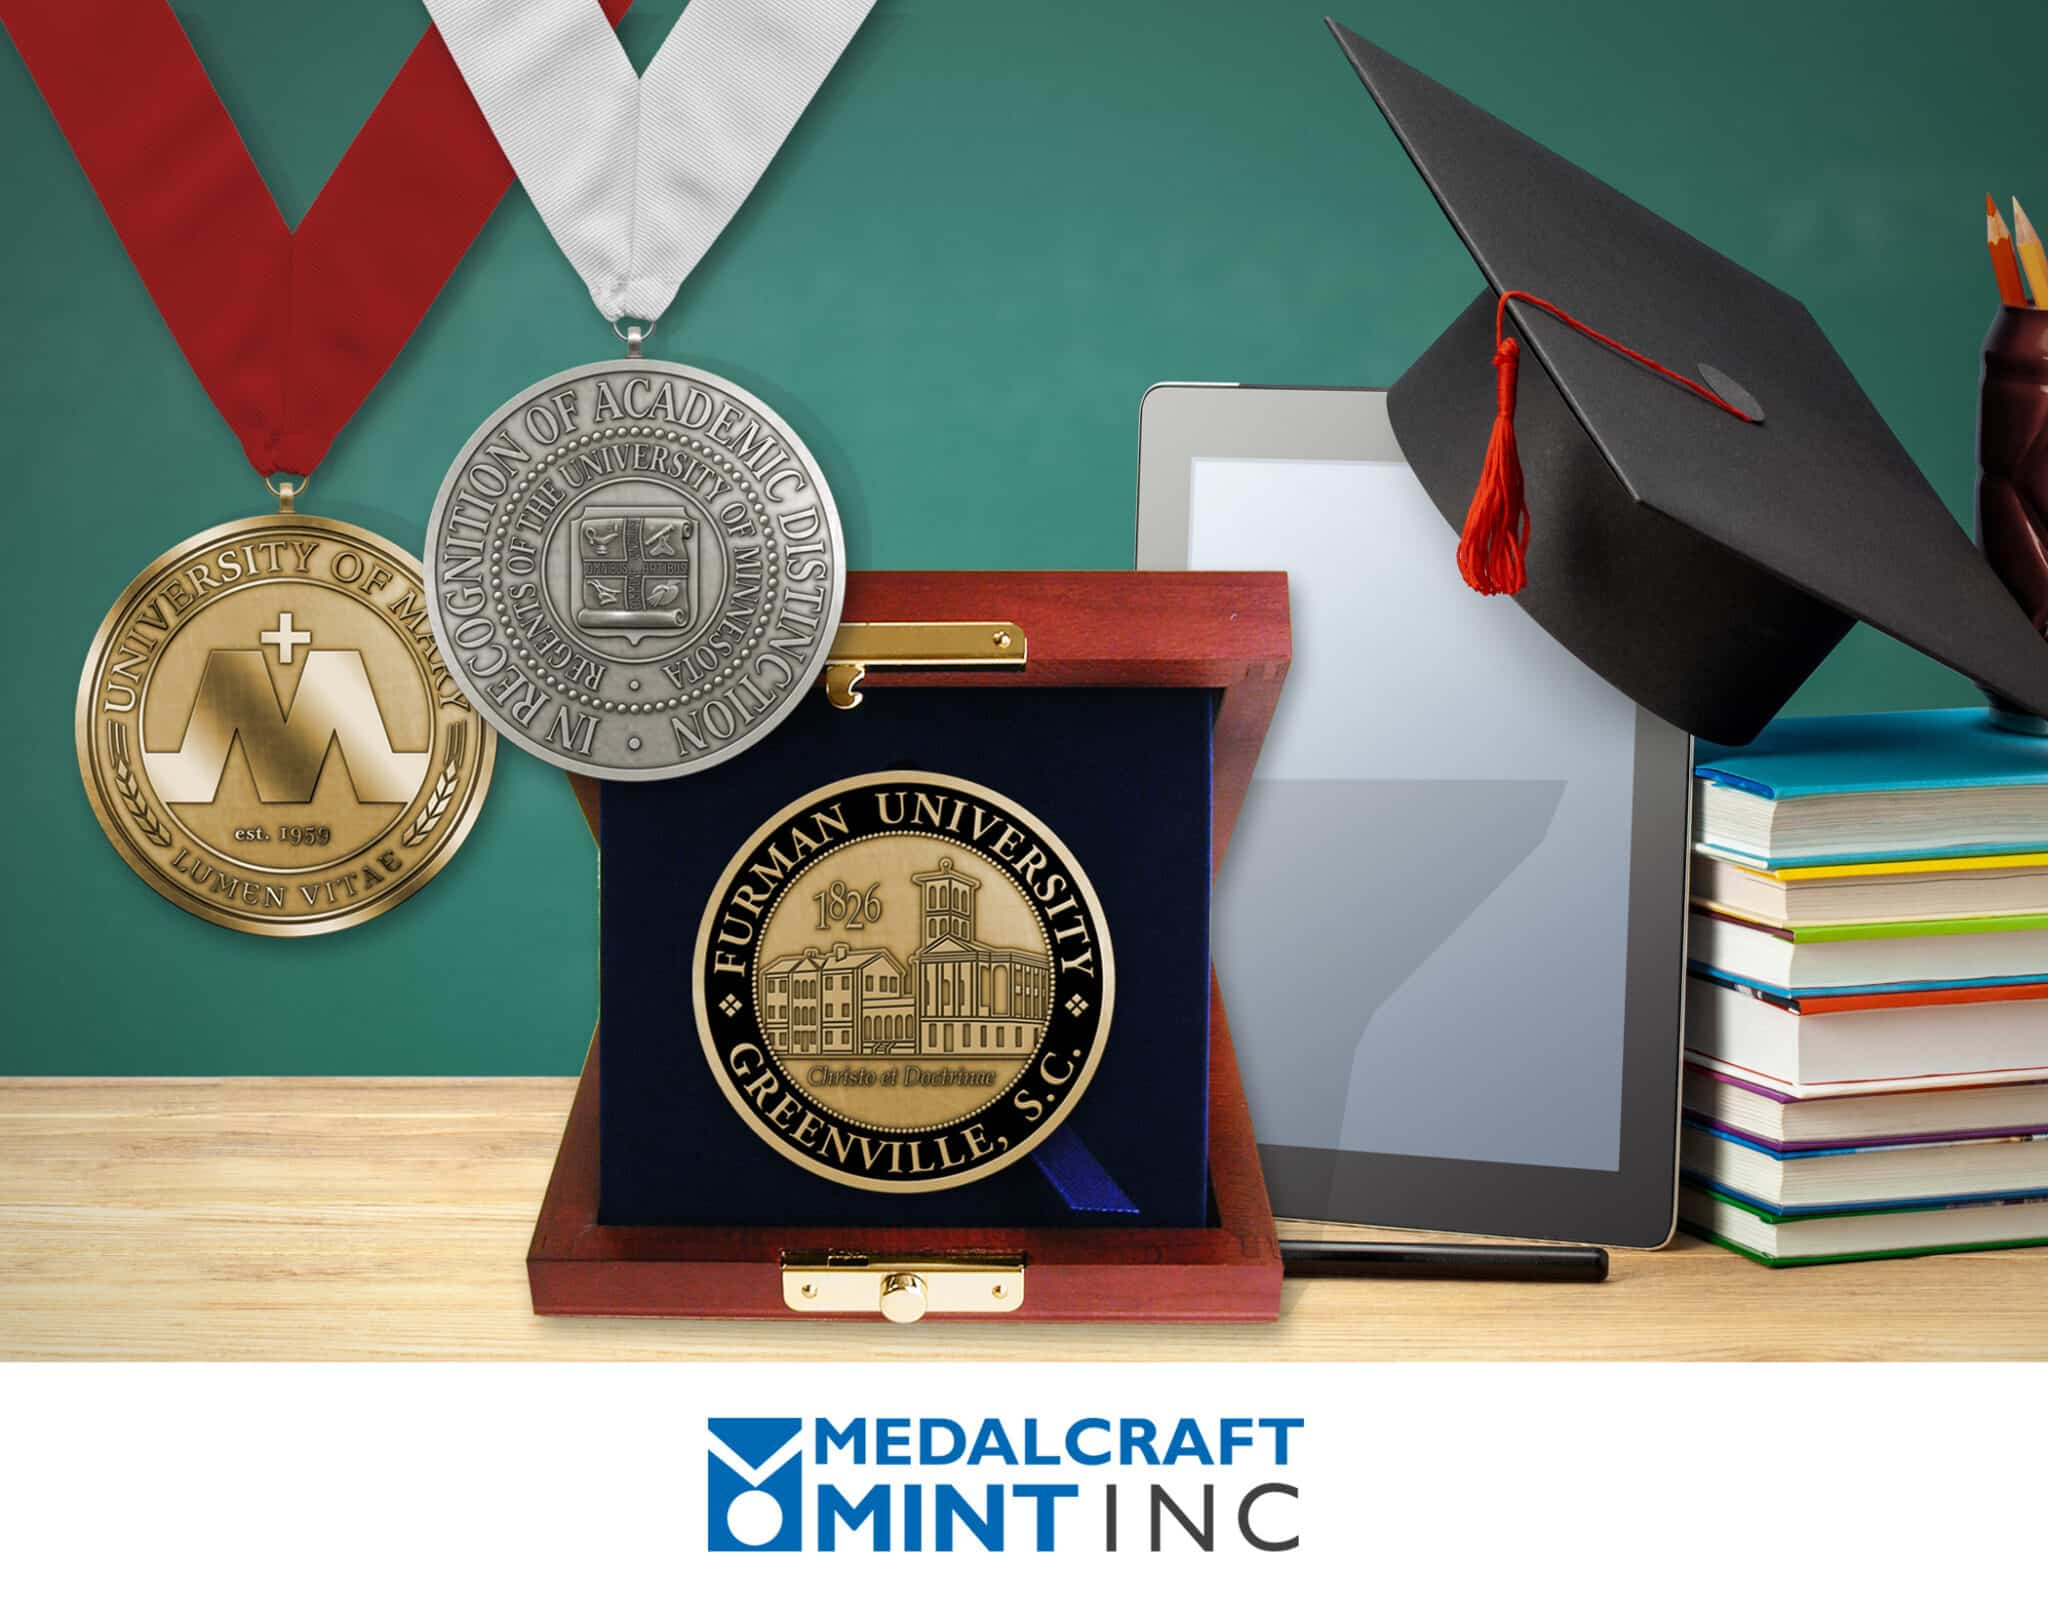 Graduation medals strengthen ties during virtual times